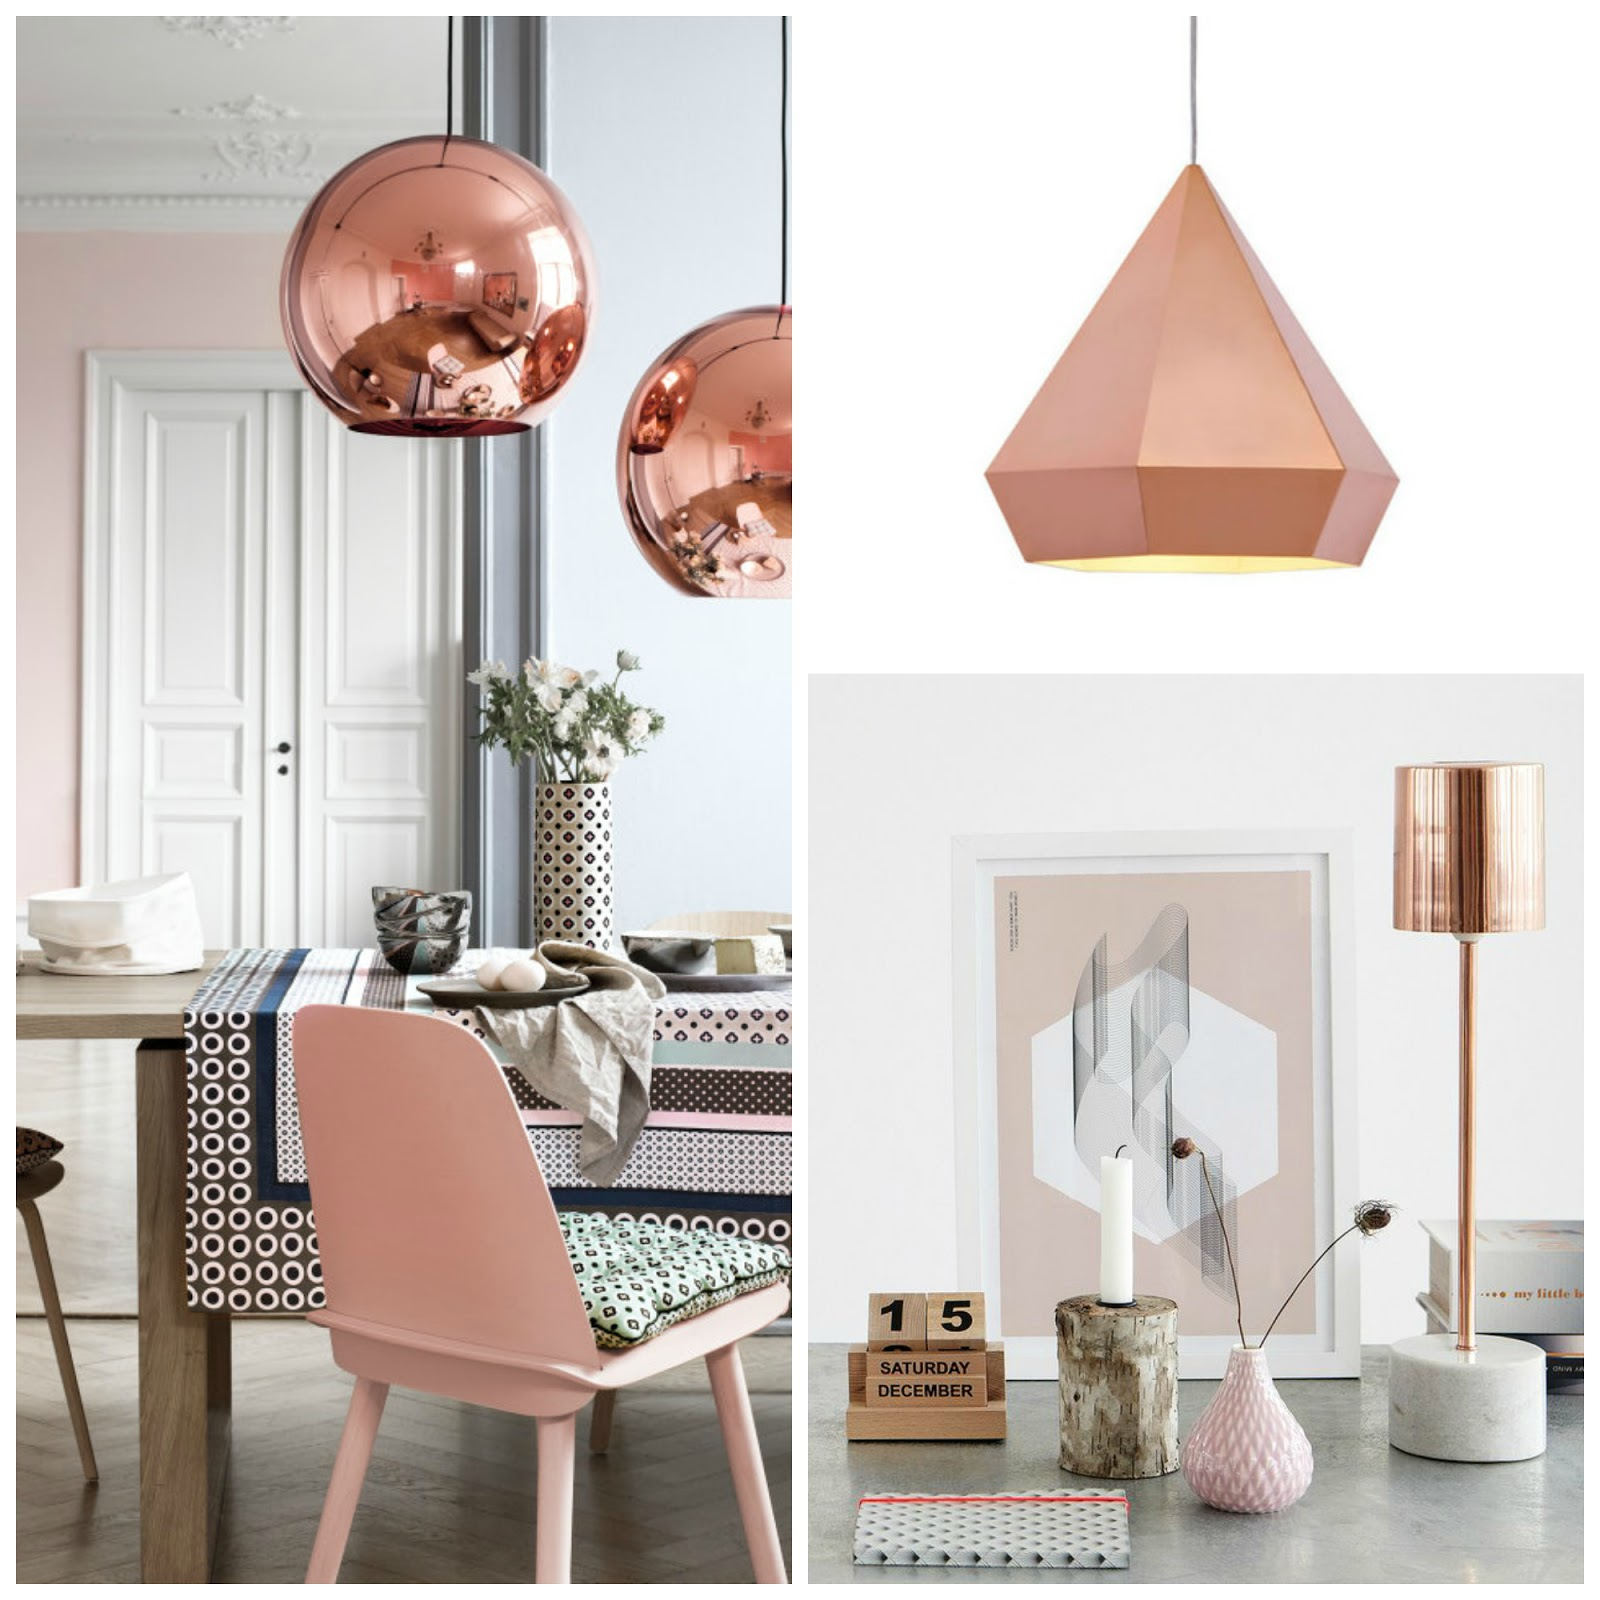 THEORY OF DESIGN: COPPER & ROSE GOLD